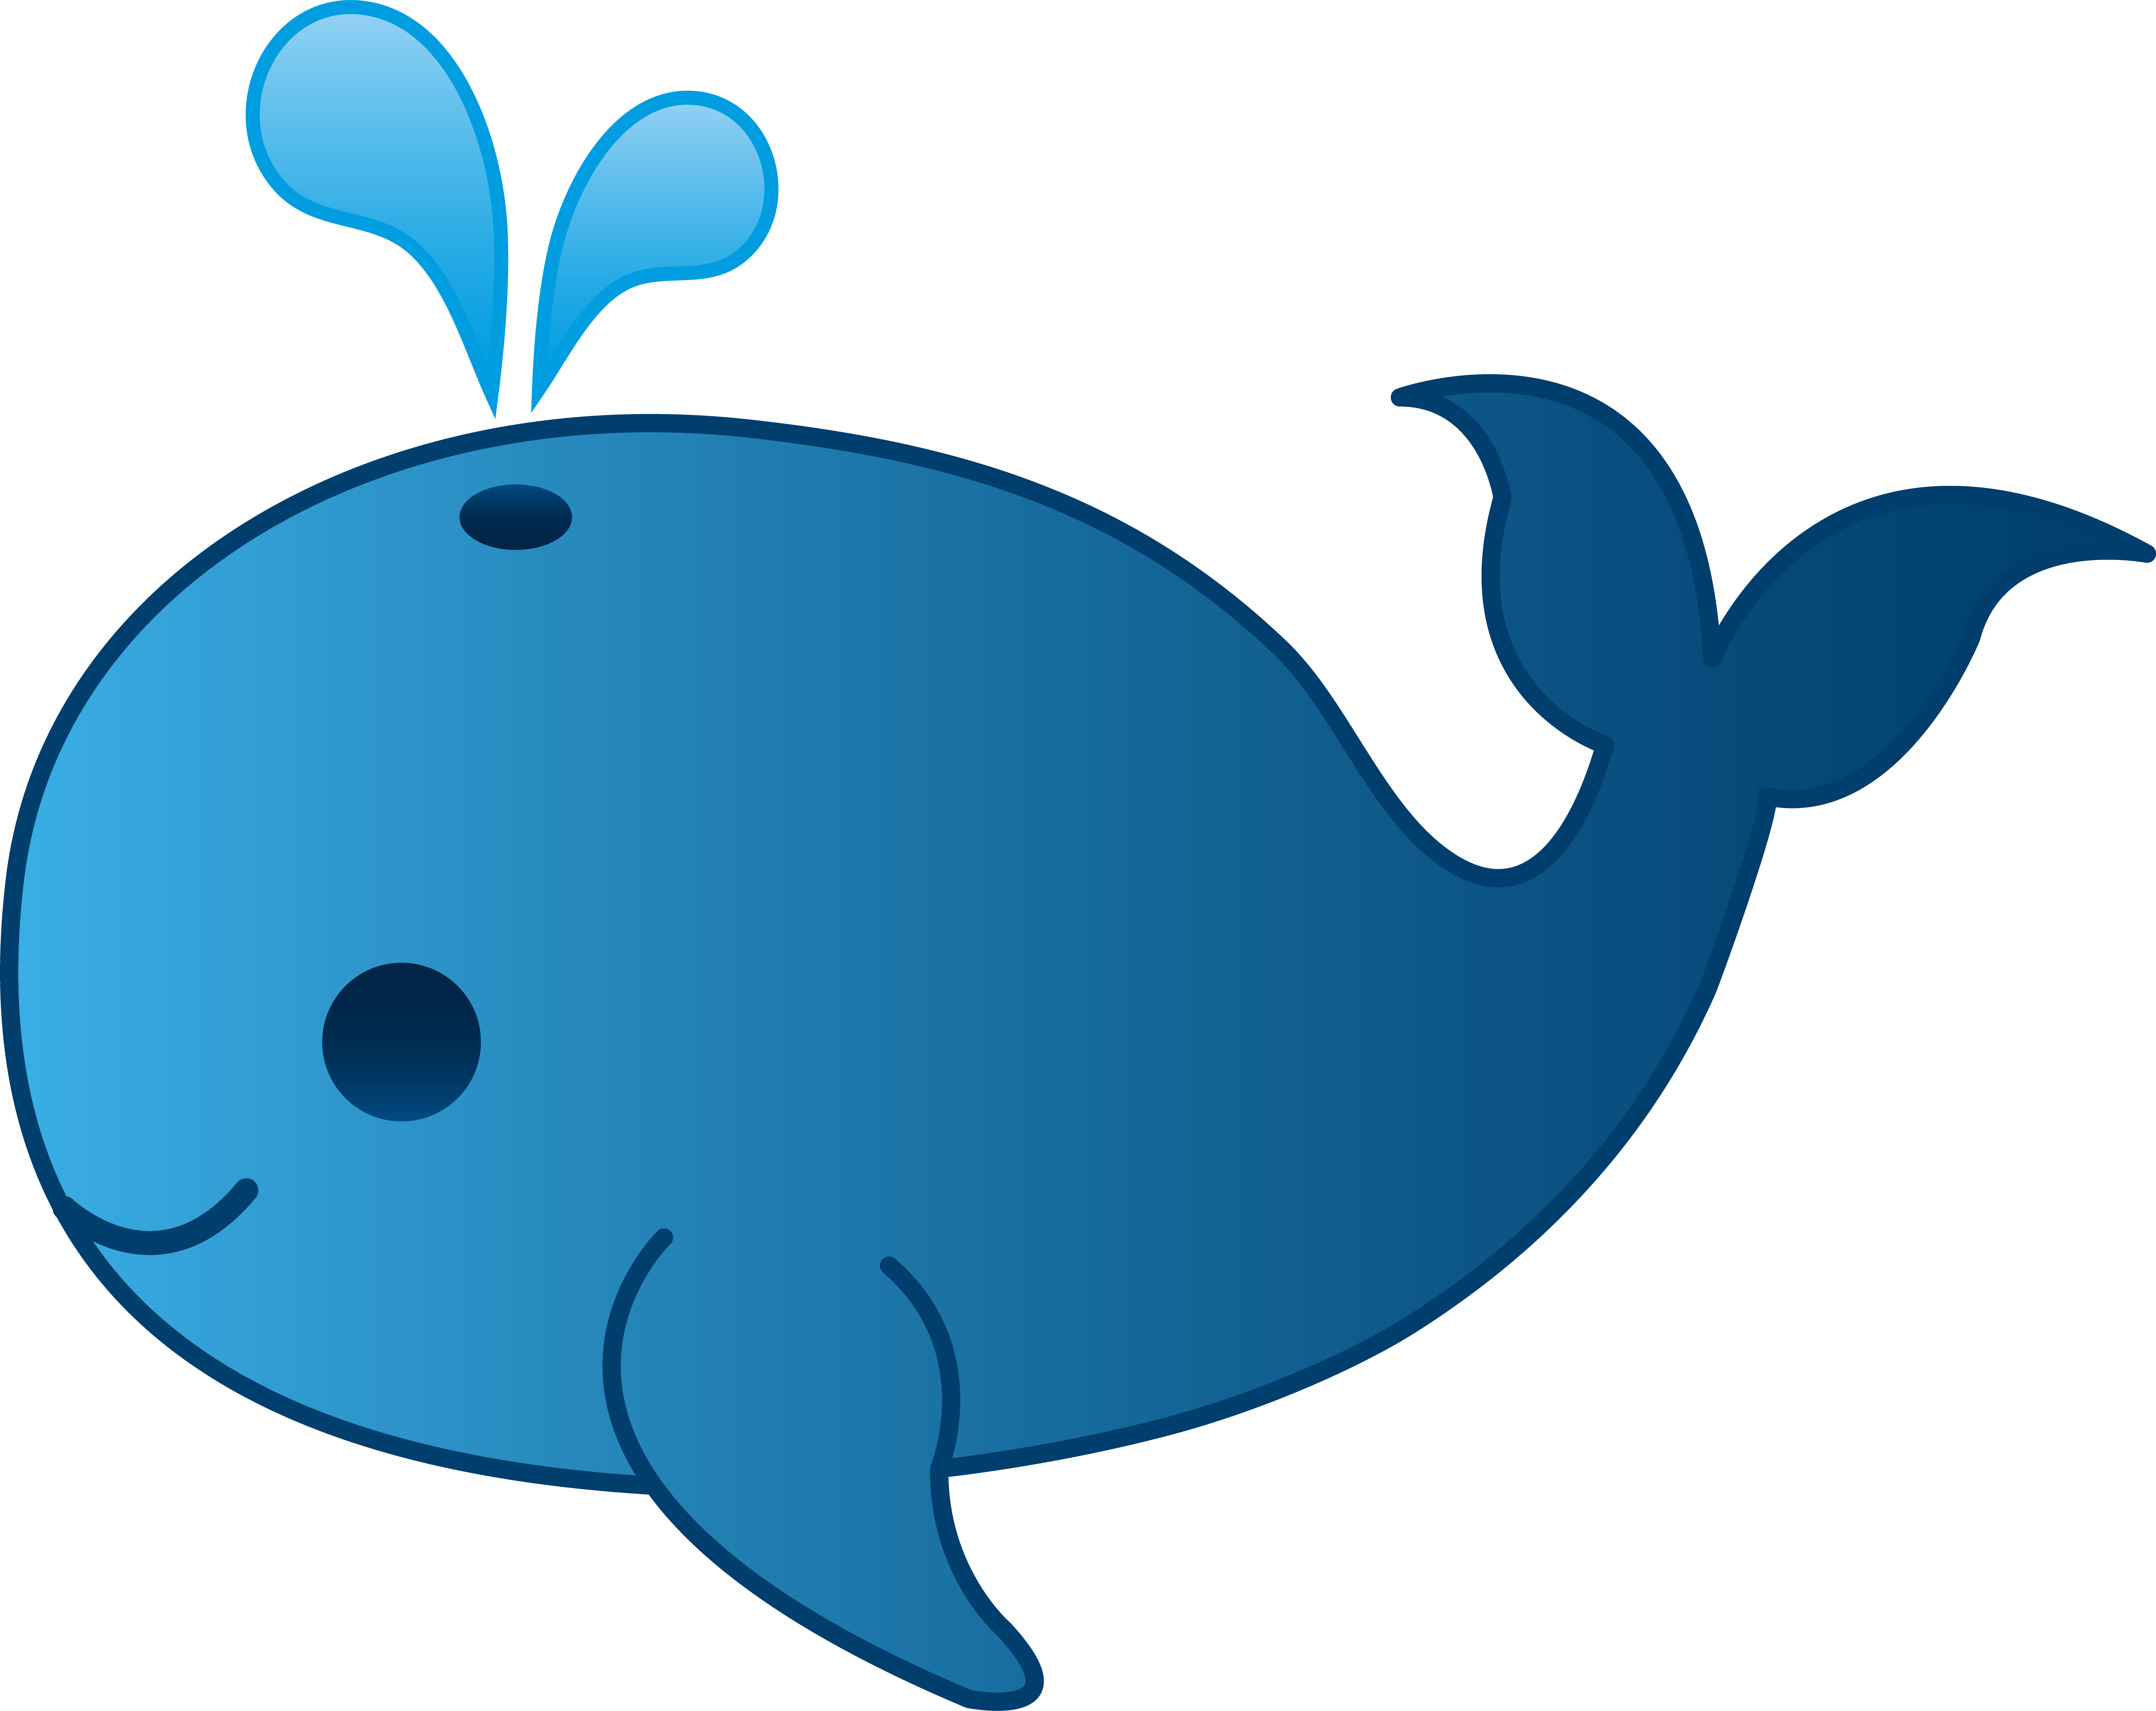 6371x5057 Baby Whale Png Transparent Baby Whale.png Images. Pluspng